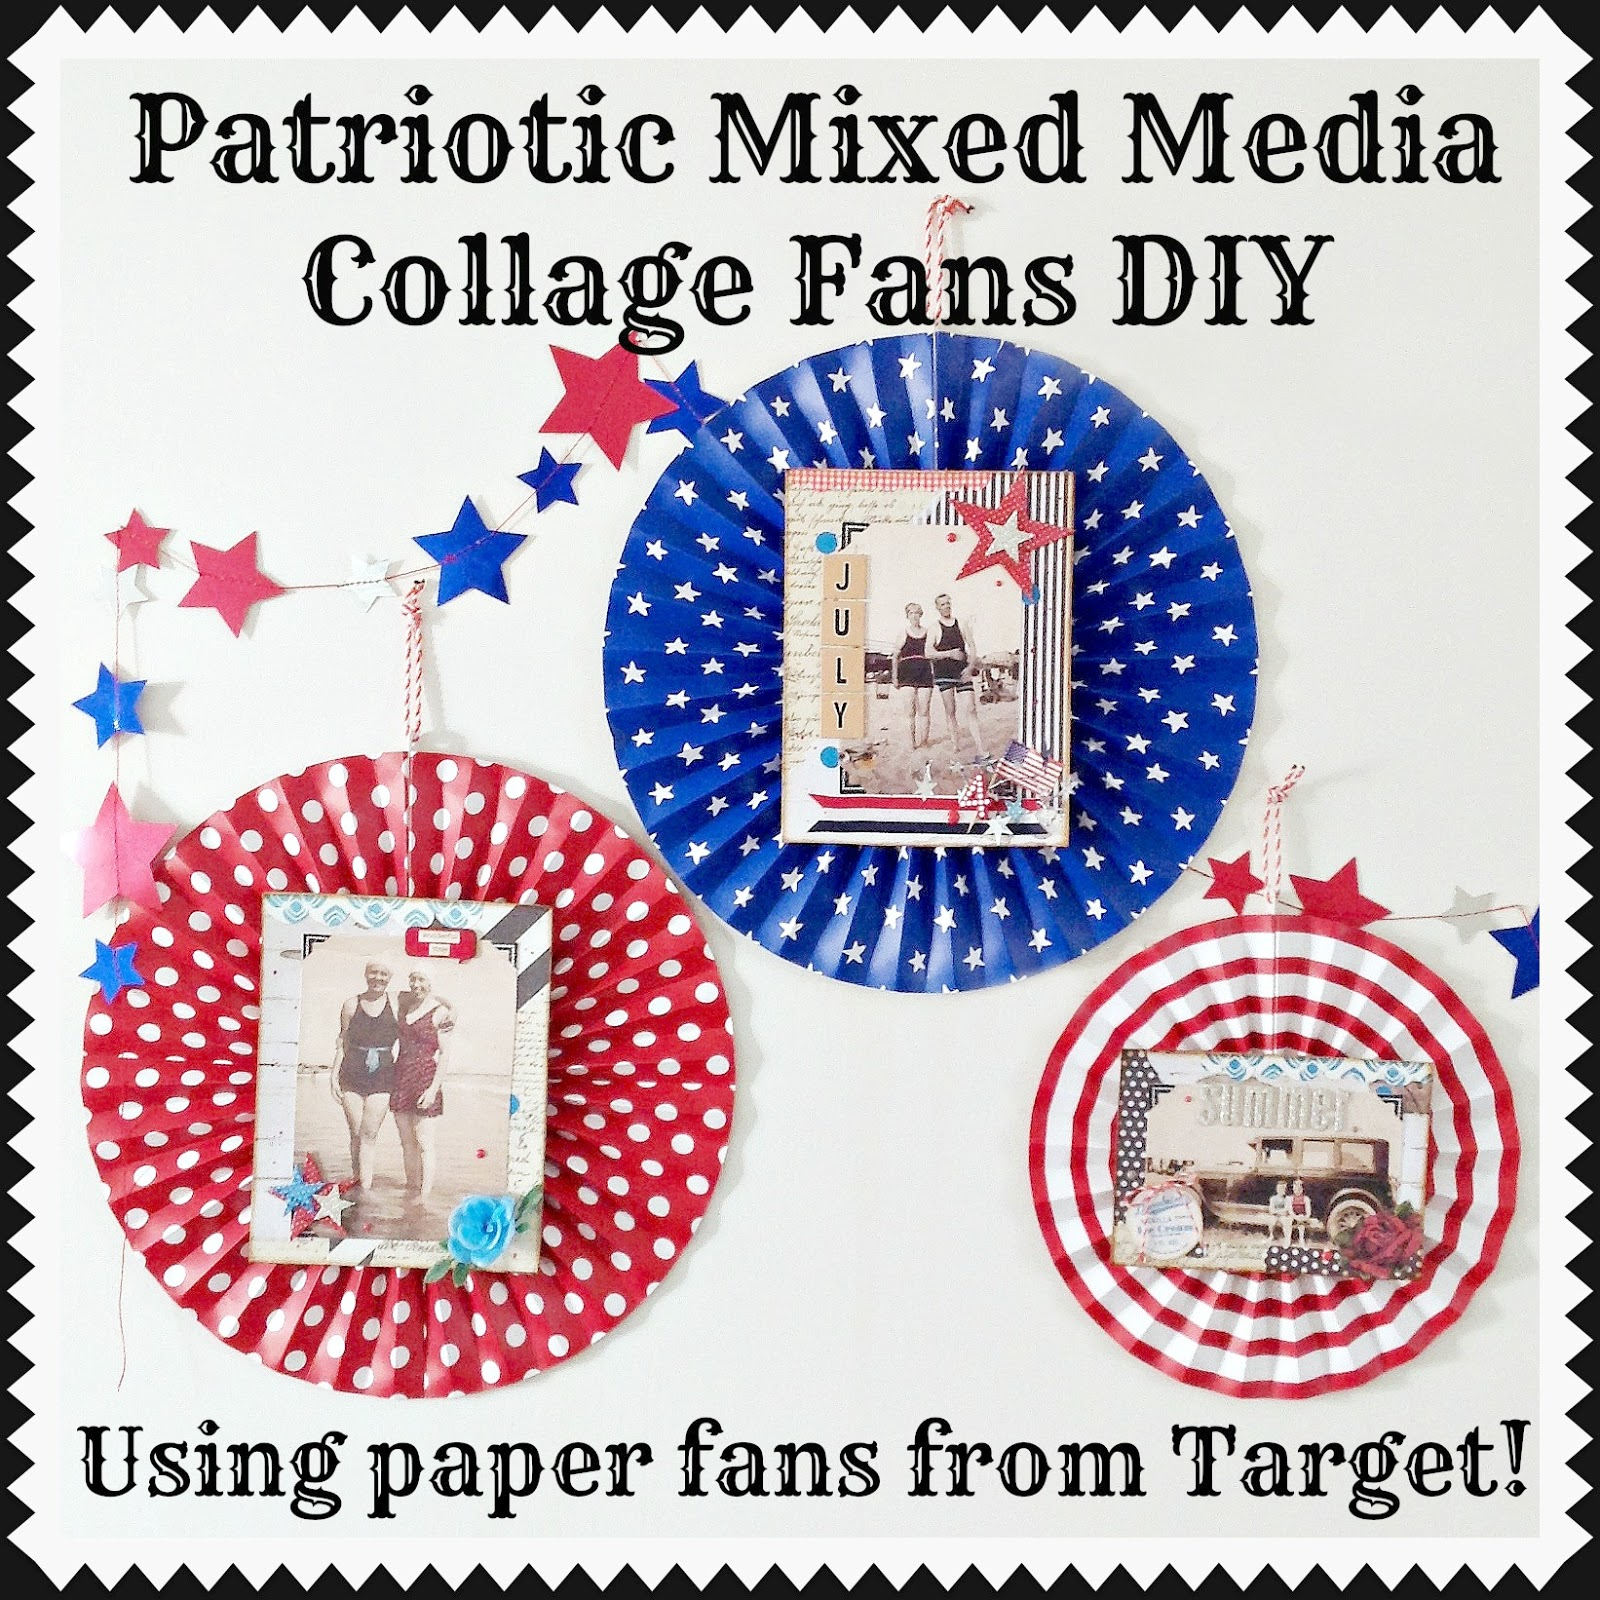 Patriotic Mixed Media Collage Fan Decorations DIY (using pre